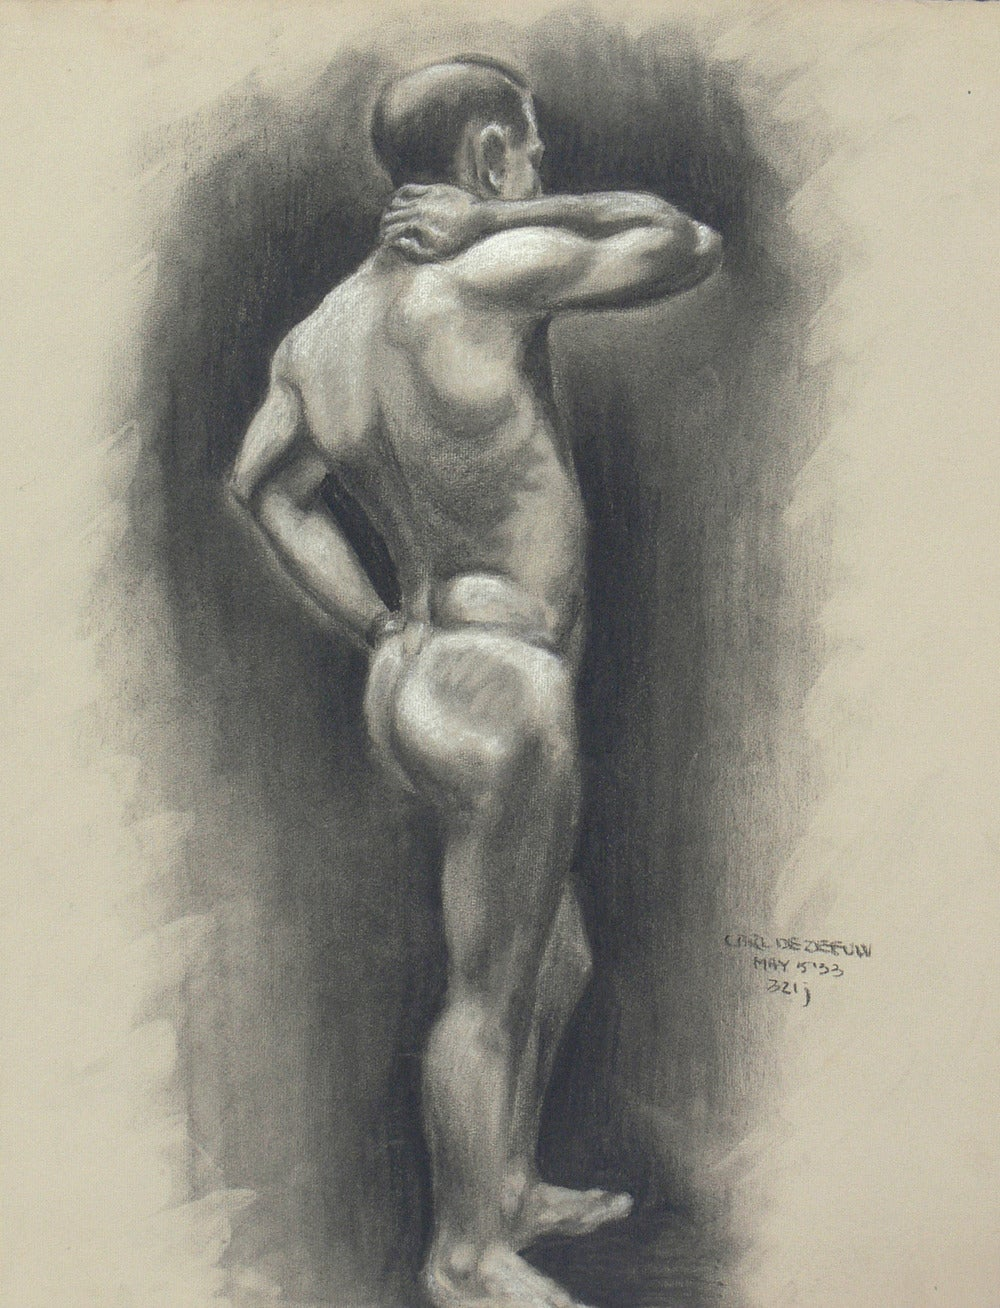 Selection of 1930's Academic Study Drawings of Male Nudes, hand drawn by Carl De Zeeuw, American, circa 1930's. The price noted below is for EACH drawing and does NOT include the frame.